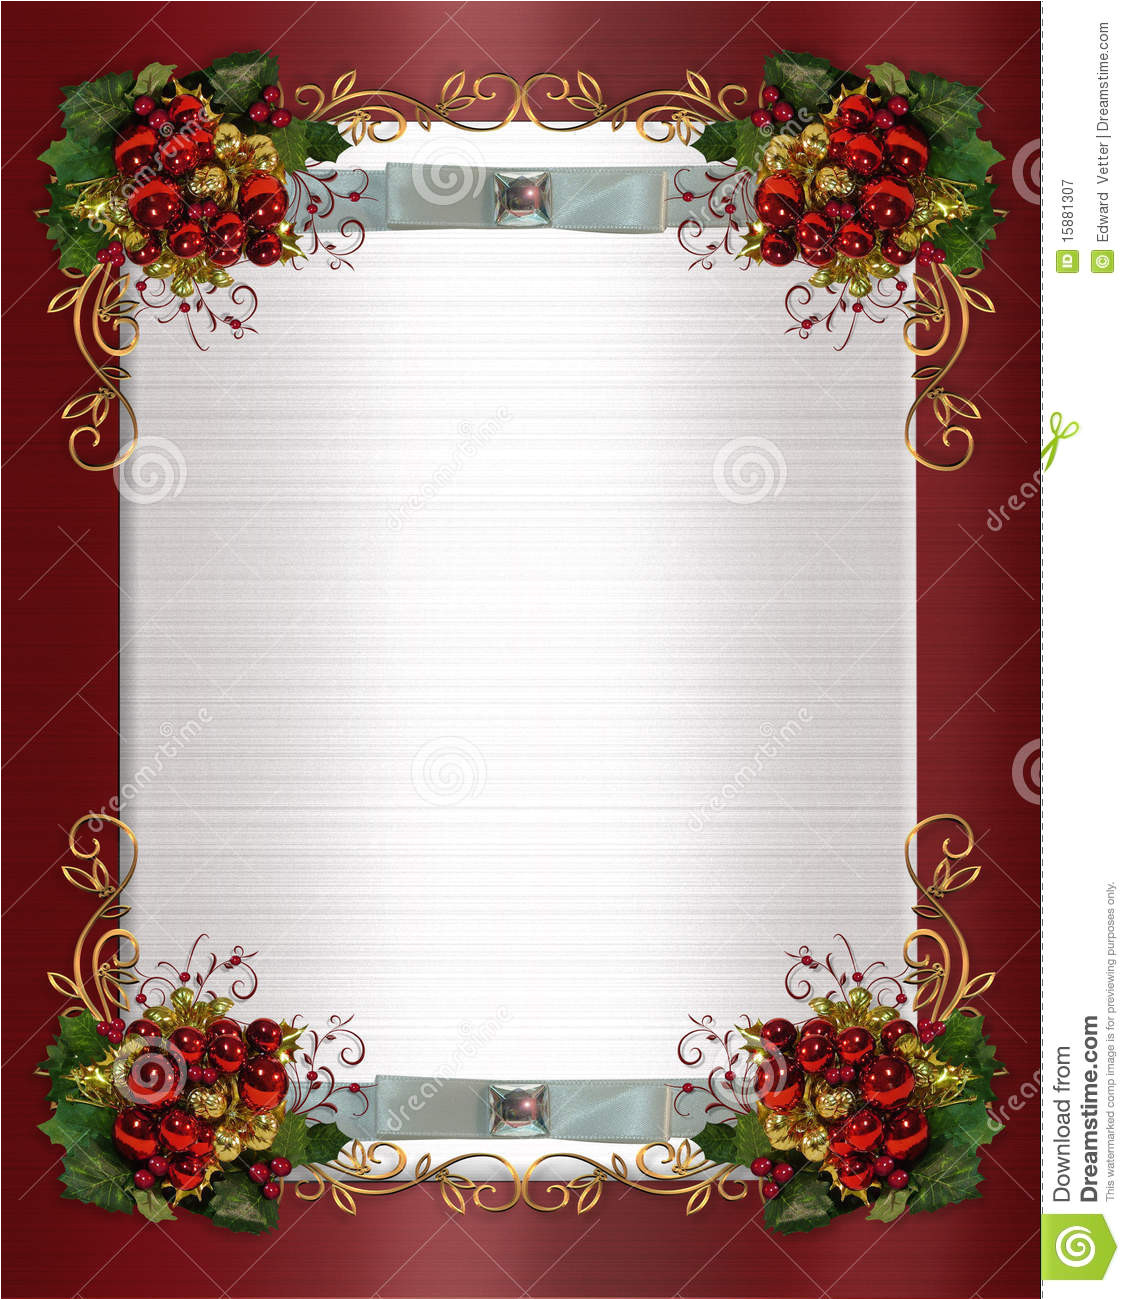 royalty free stock photography christmas winter wedding border image15881307